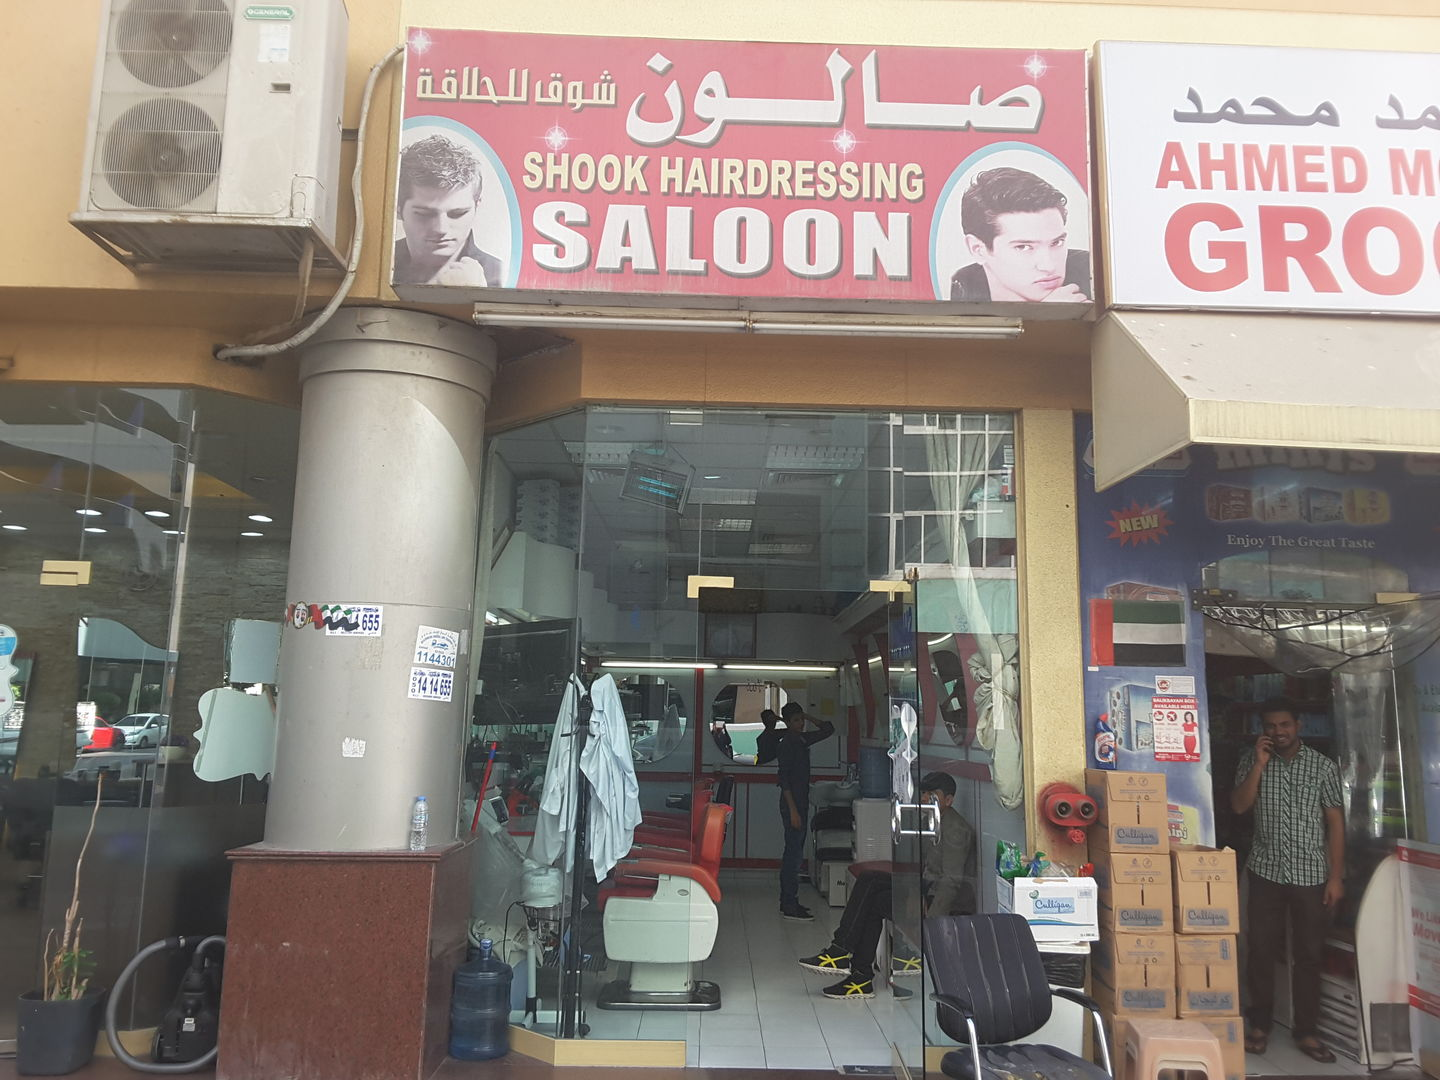 HiDubai-business-shook-hairdressing-saloon-beauty-wellness-health-beauty-salons-al-rigga-dubai-2